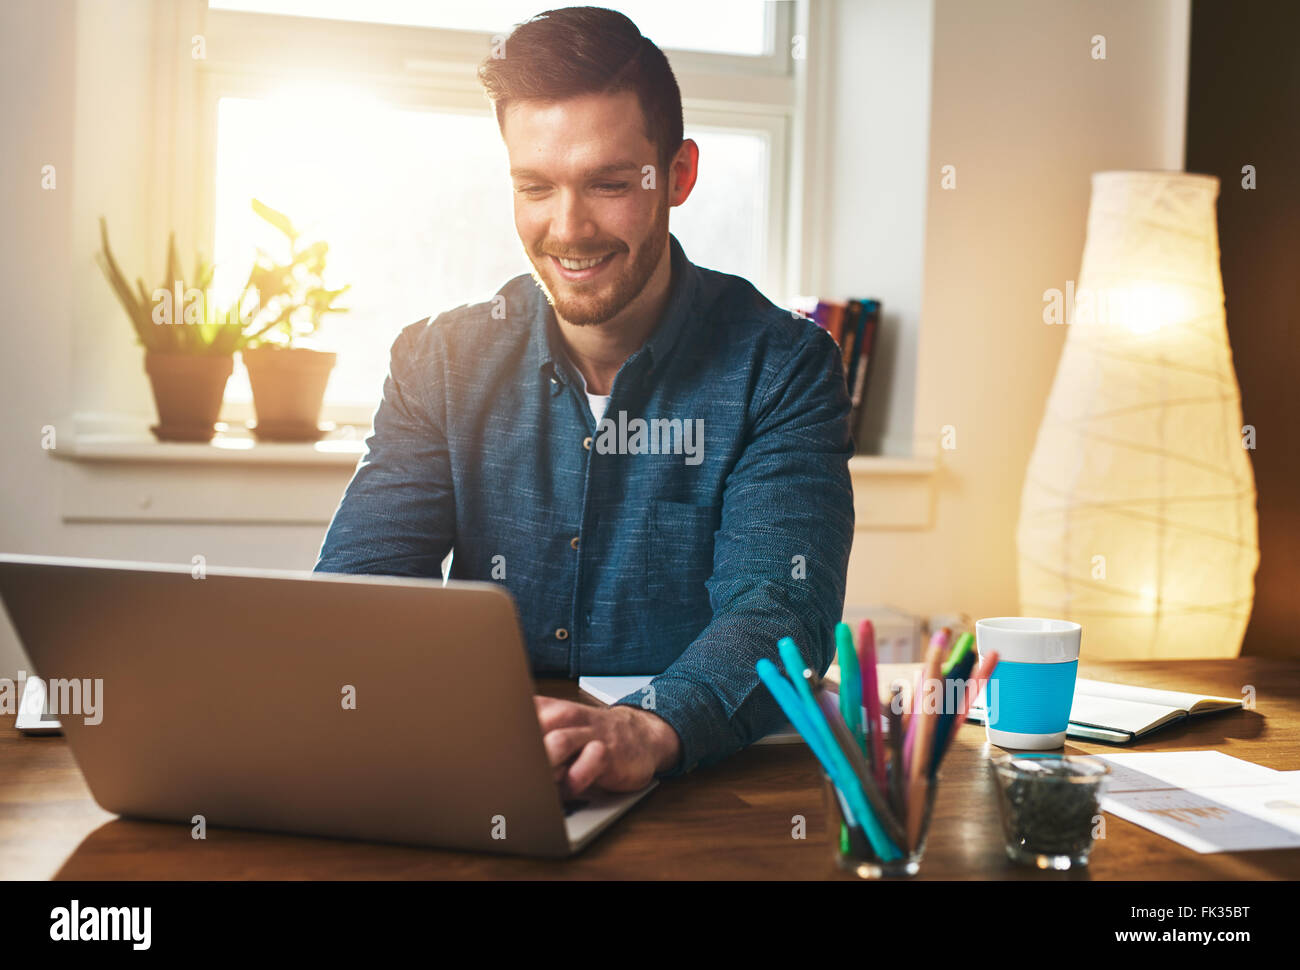 Successful entrepreneur smiling in satisfaction as he checks information on his laptop computer while working in - Stock Image